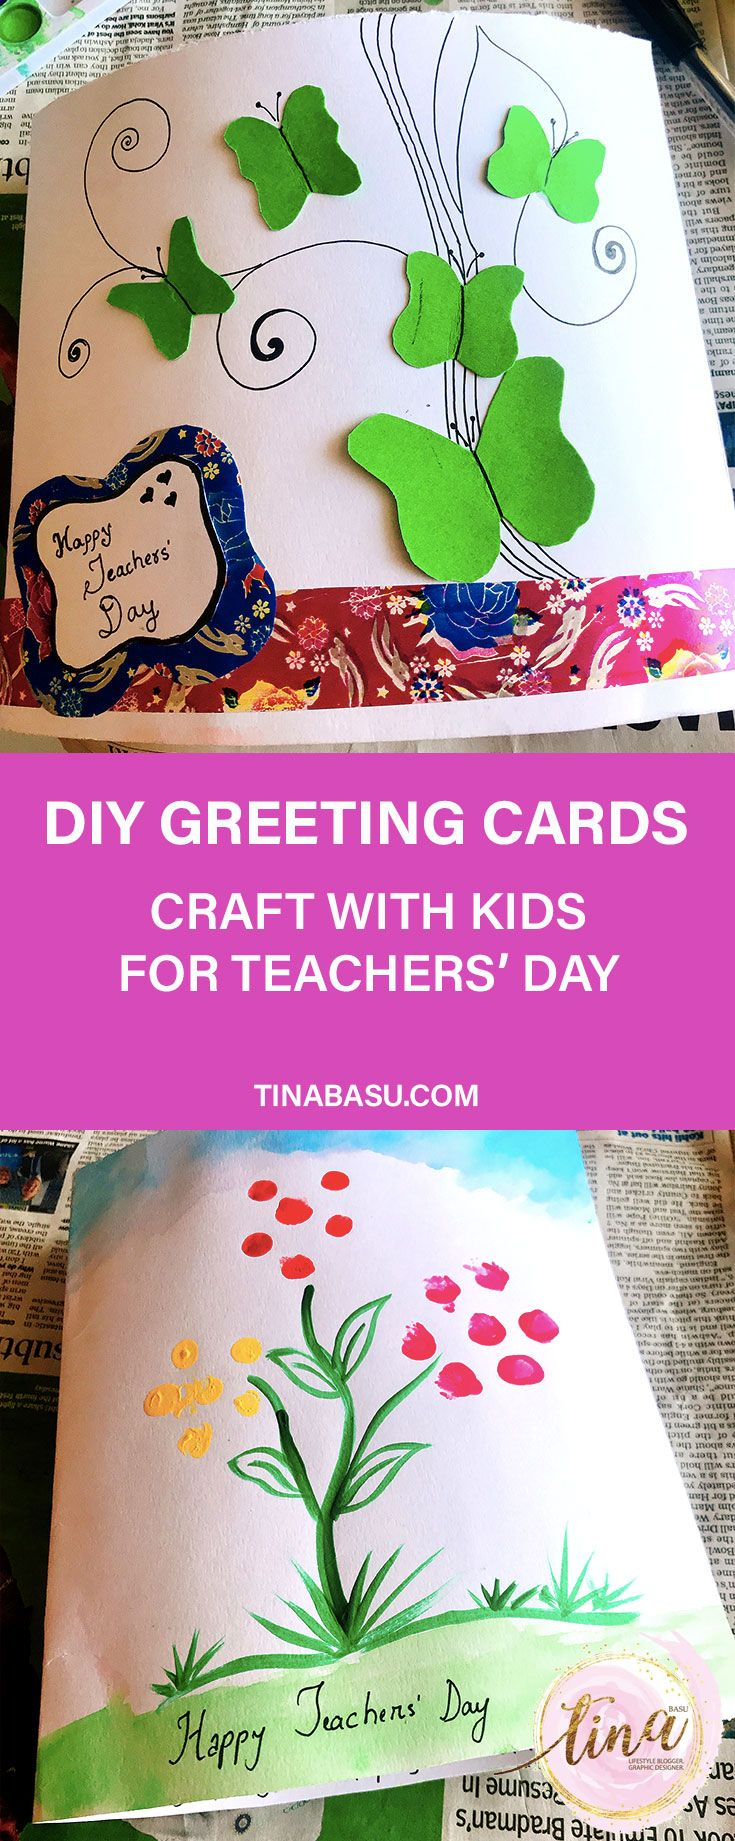 Happy Teachers Day Diy Greeting Card With Images Teachers Day